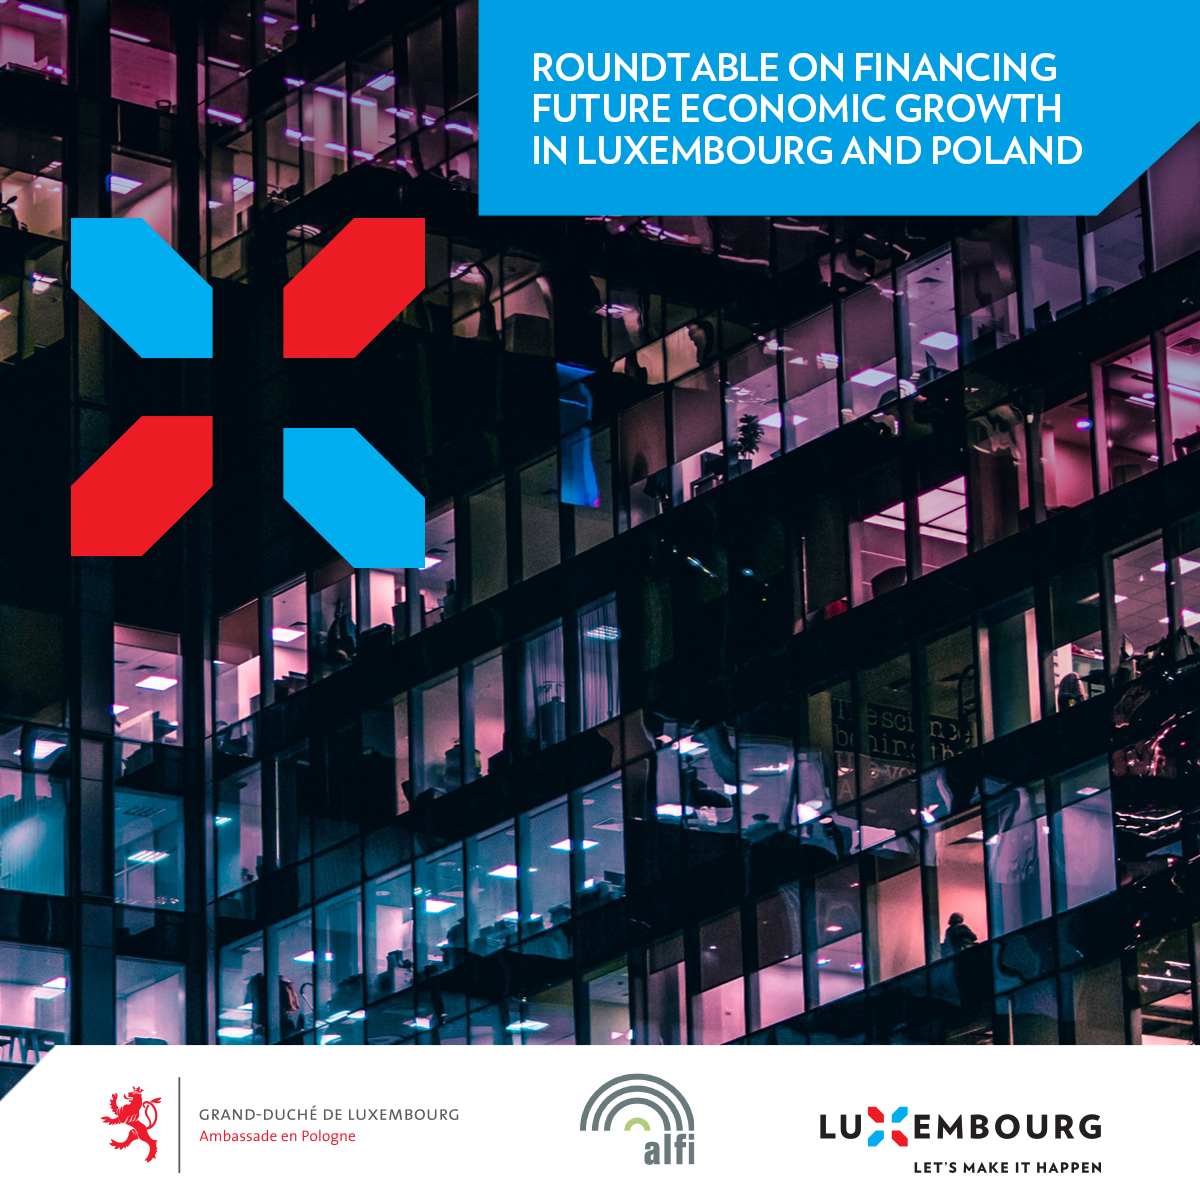 MAE - Invitation to a ROUNDTABLE ON FINANCING FUTURE